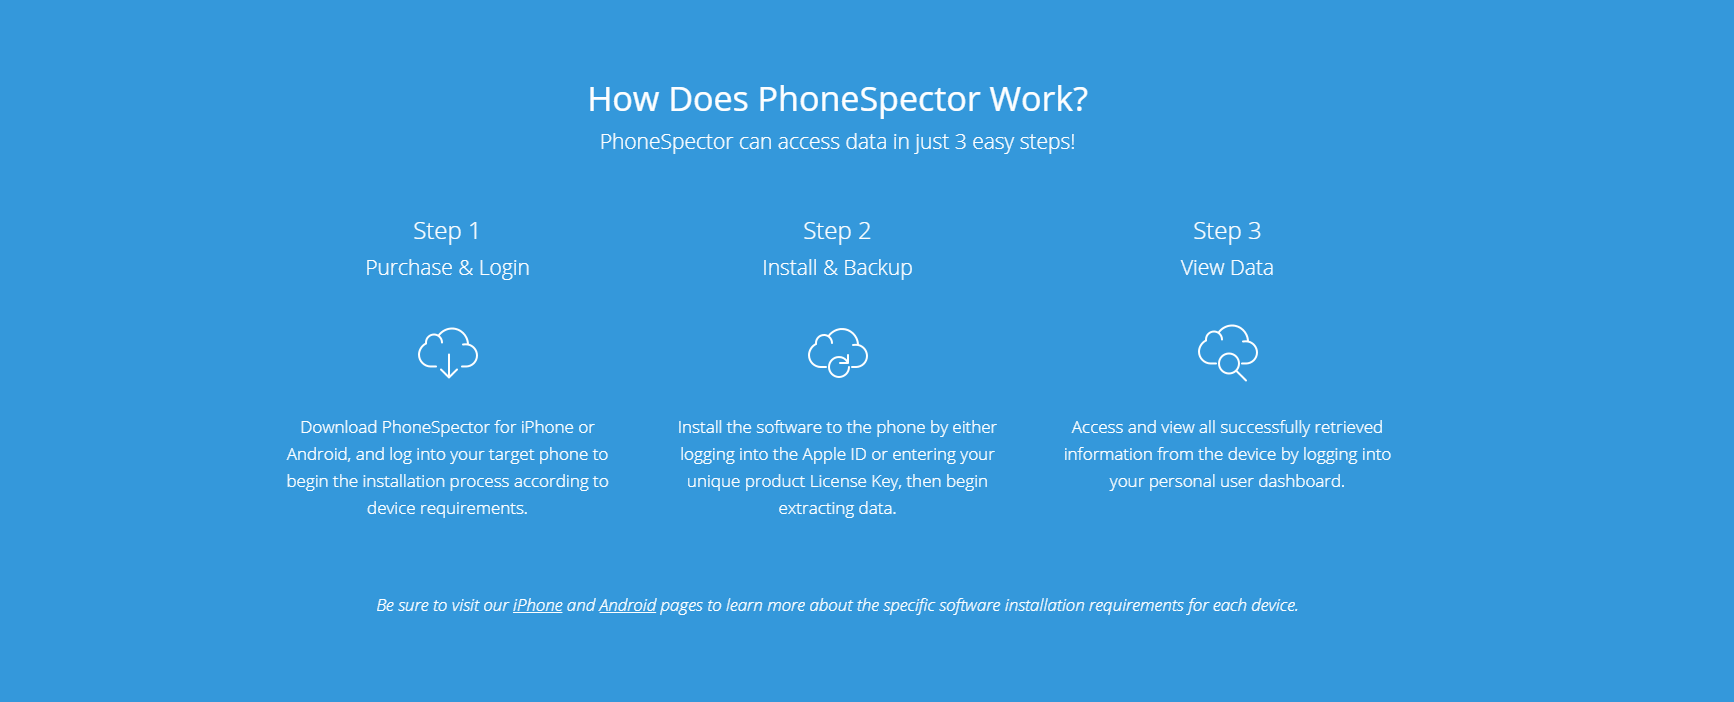 PhoneSpector Review